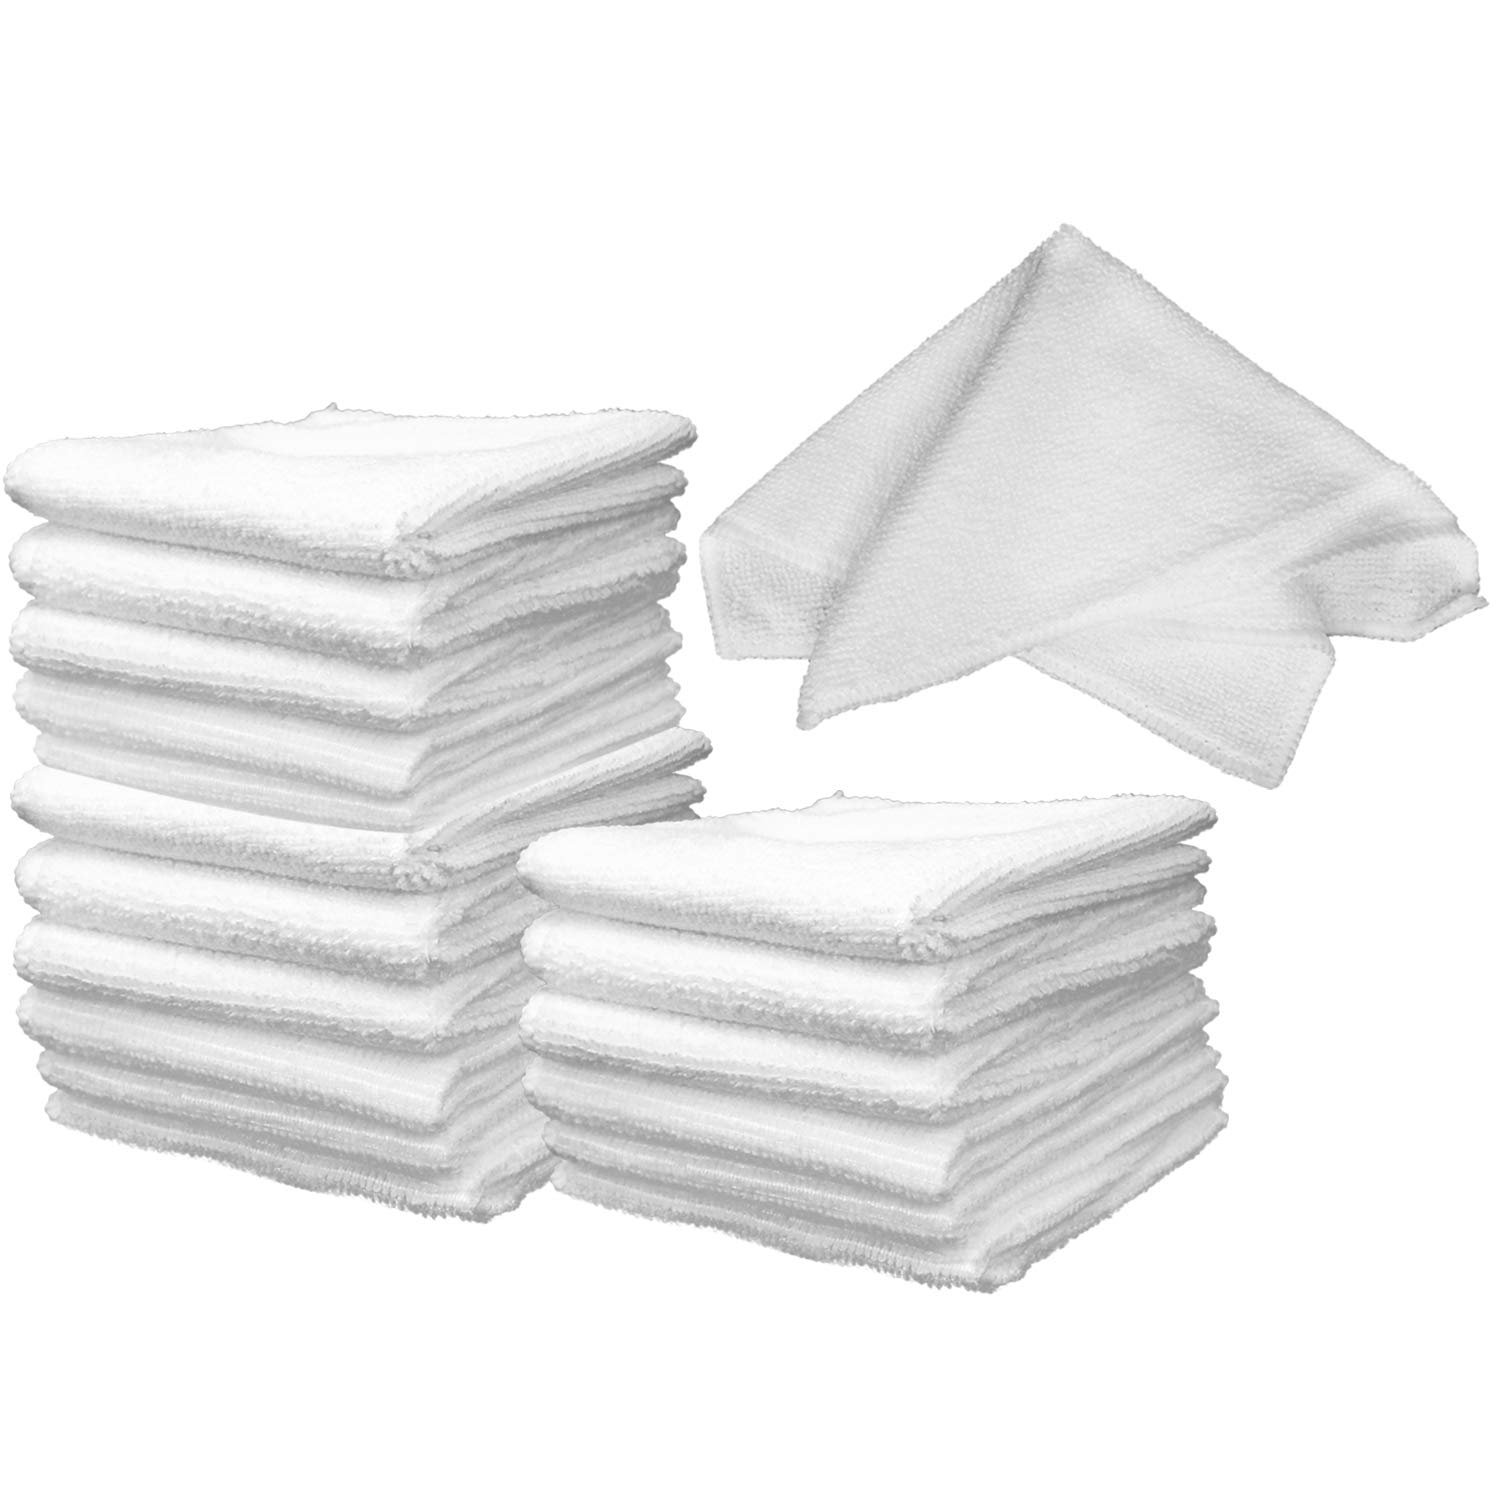 COM-FOUR ® 18x facial cleansing wipes made from microfibre in economy pack